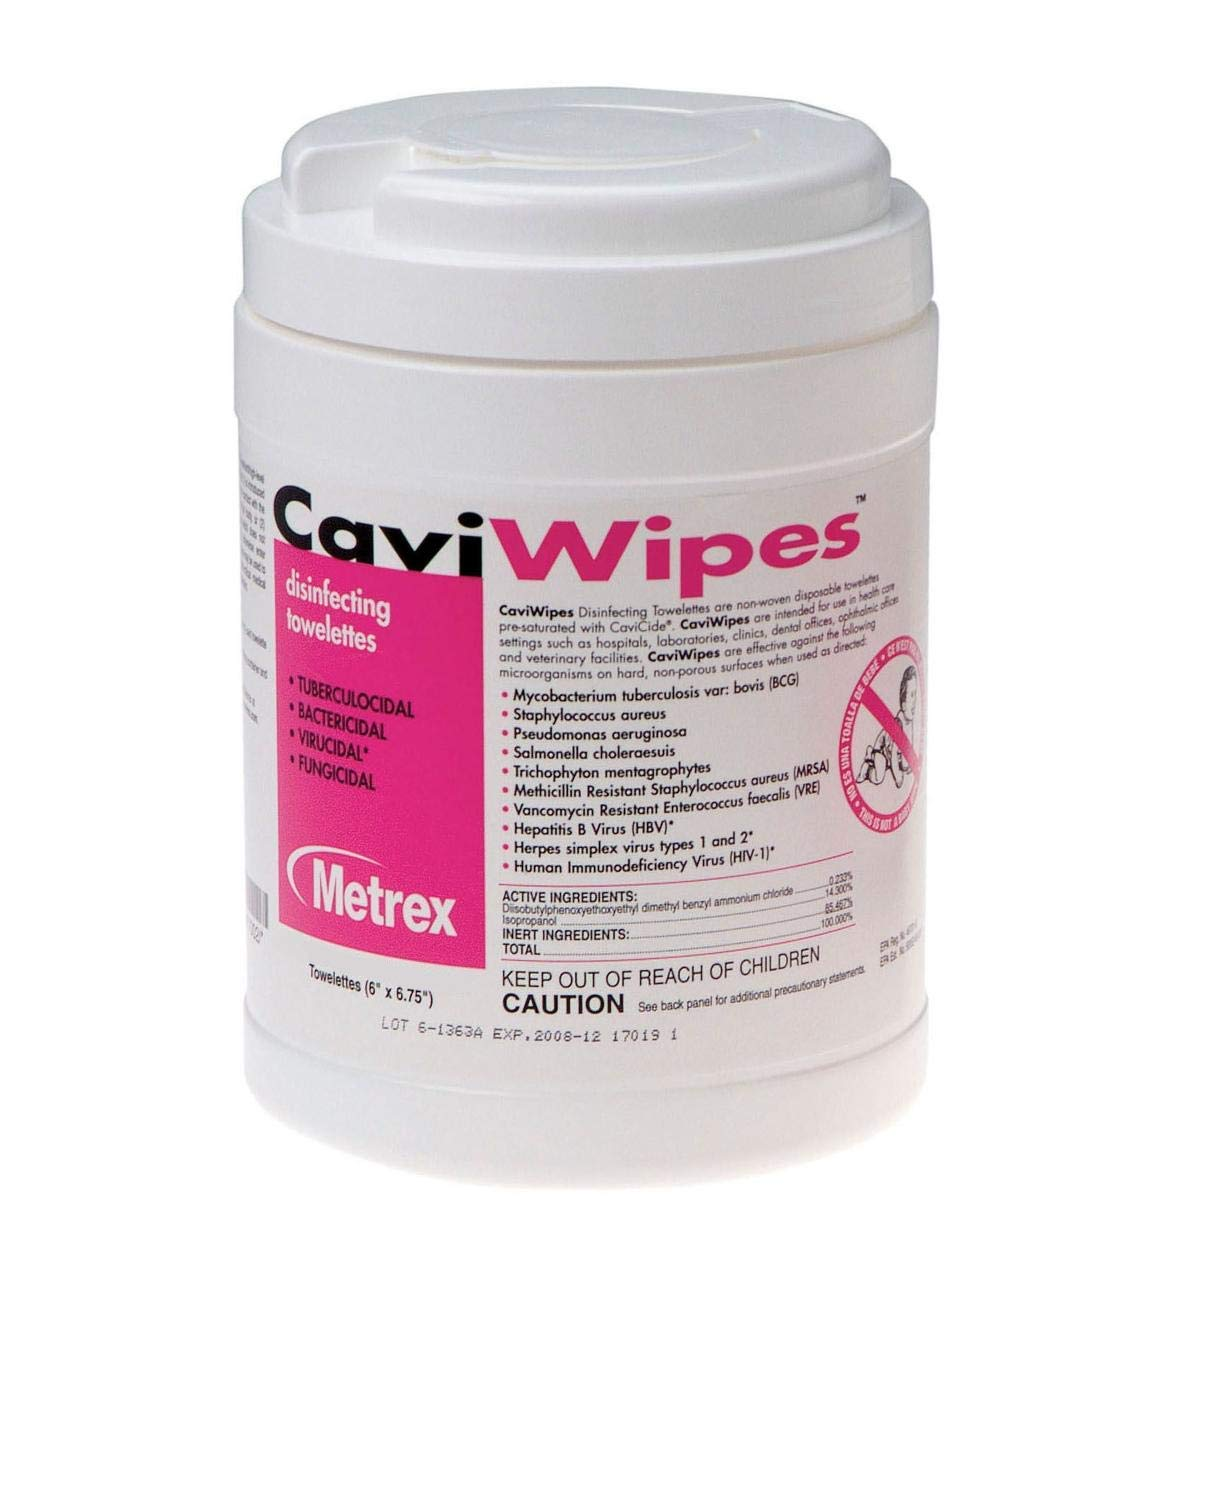 Metrex (Cavicide) CaviWipes Disinfecting Towelettes - 220 wipes per Canister/ 12 Canisters per Case